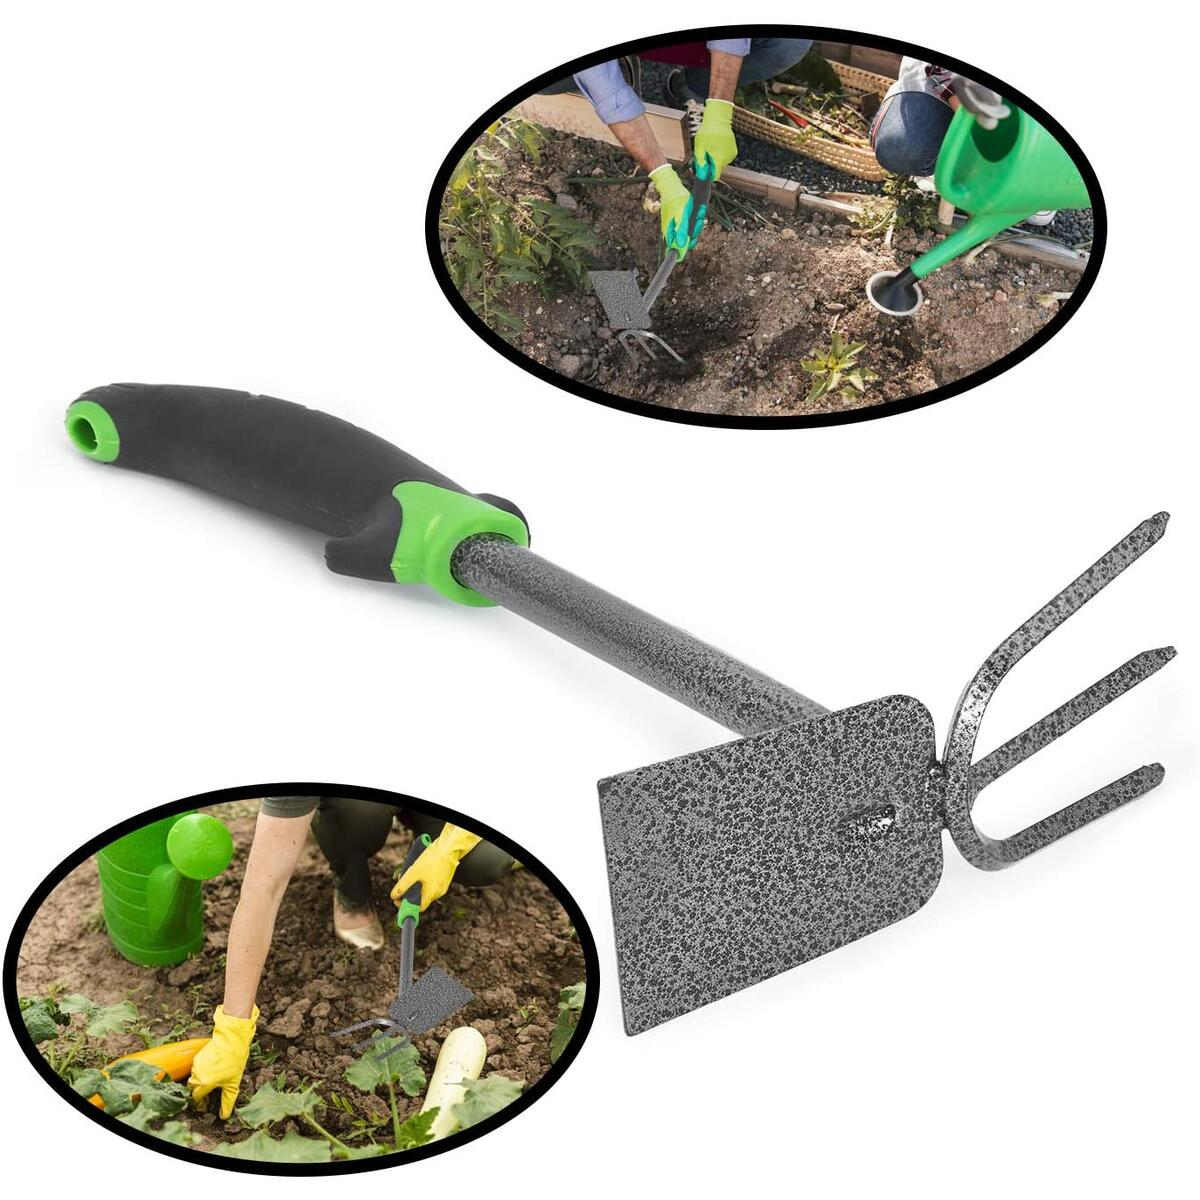 Garden Hoe and Cultivator, Dual Head Vegetable and Flower Tiller for Weeding and Digging in The Garden, Heavy Duty Carbon Steel, Bend Proof, Hand Digger and Spade Combo with Ergonomic Handle